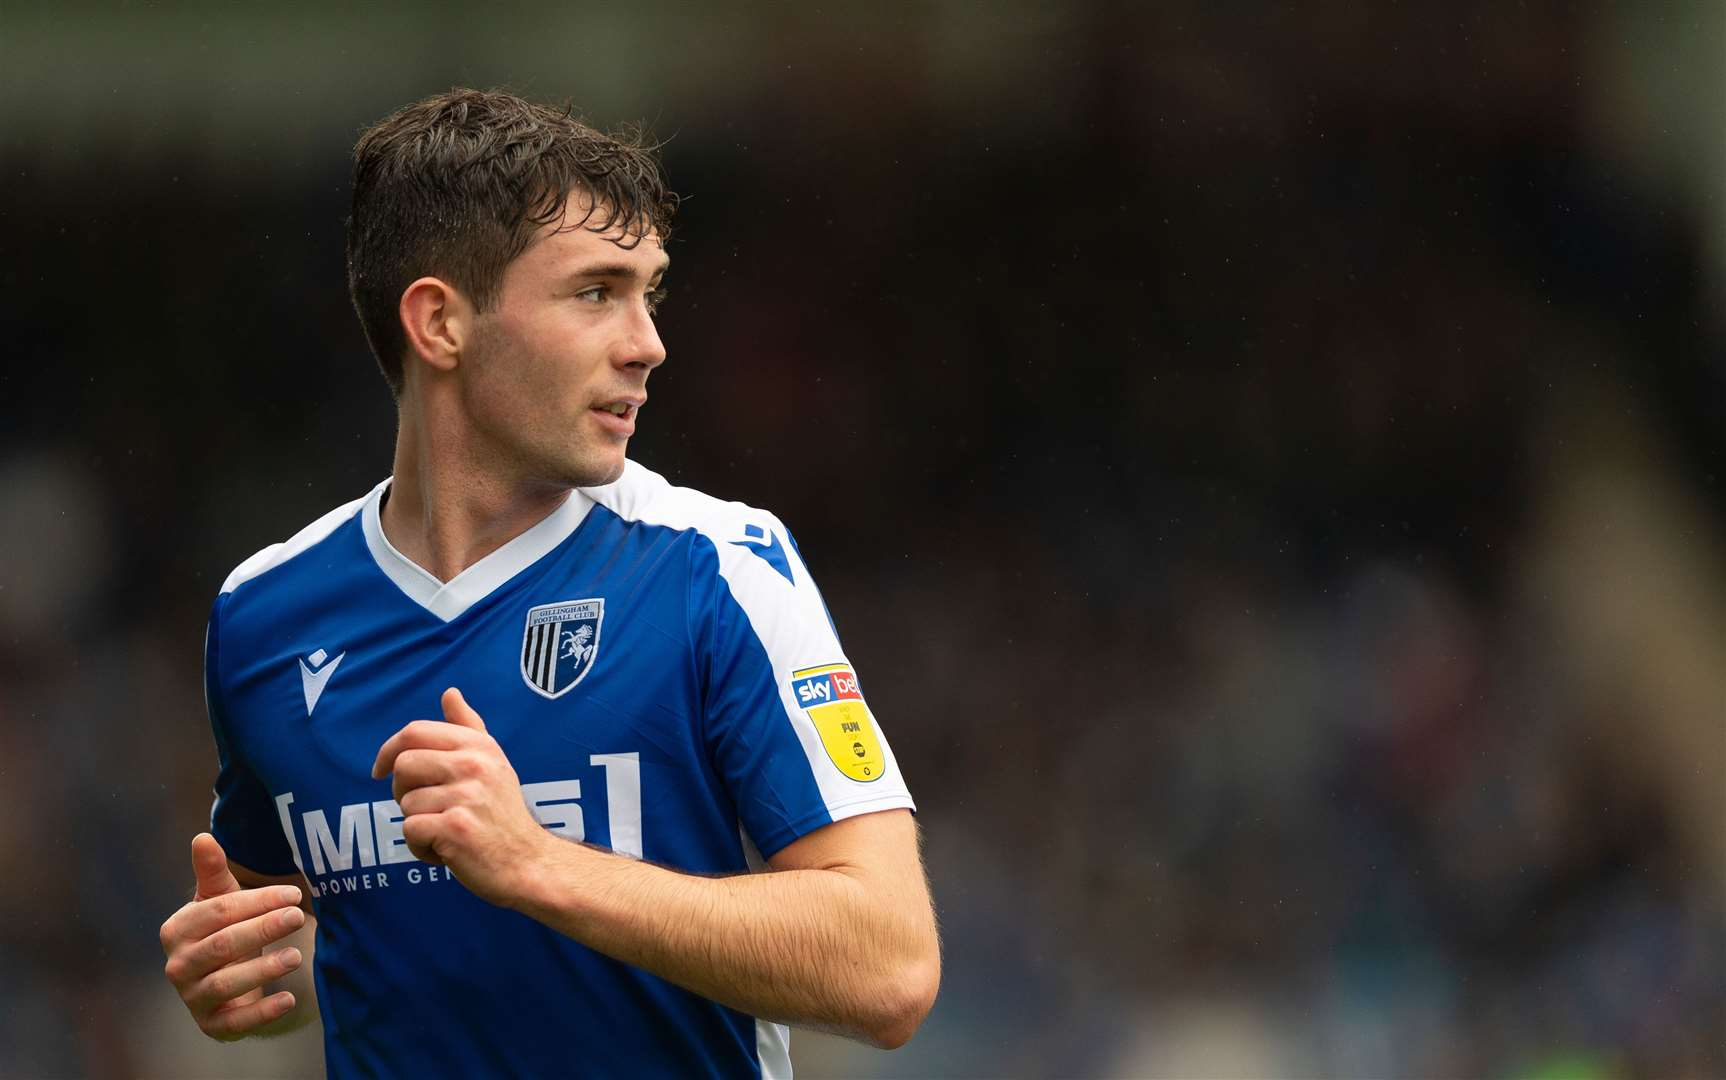 Republic of Ireland under-21 player Tom O'Connor is expected to be available this weekend for Gillingham